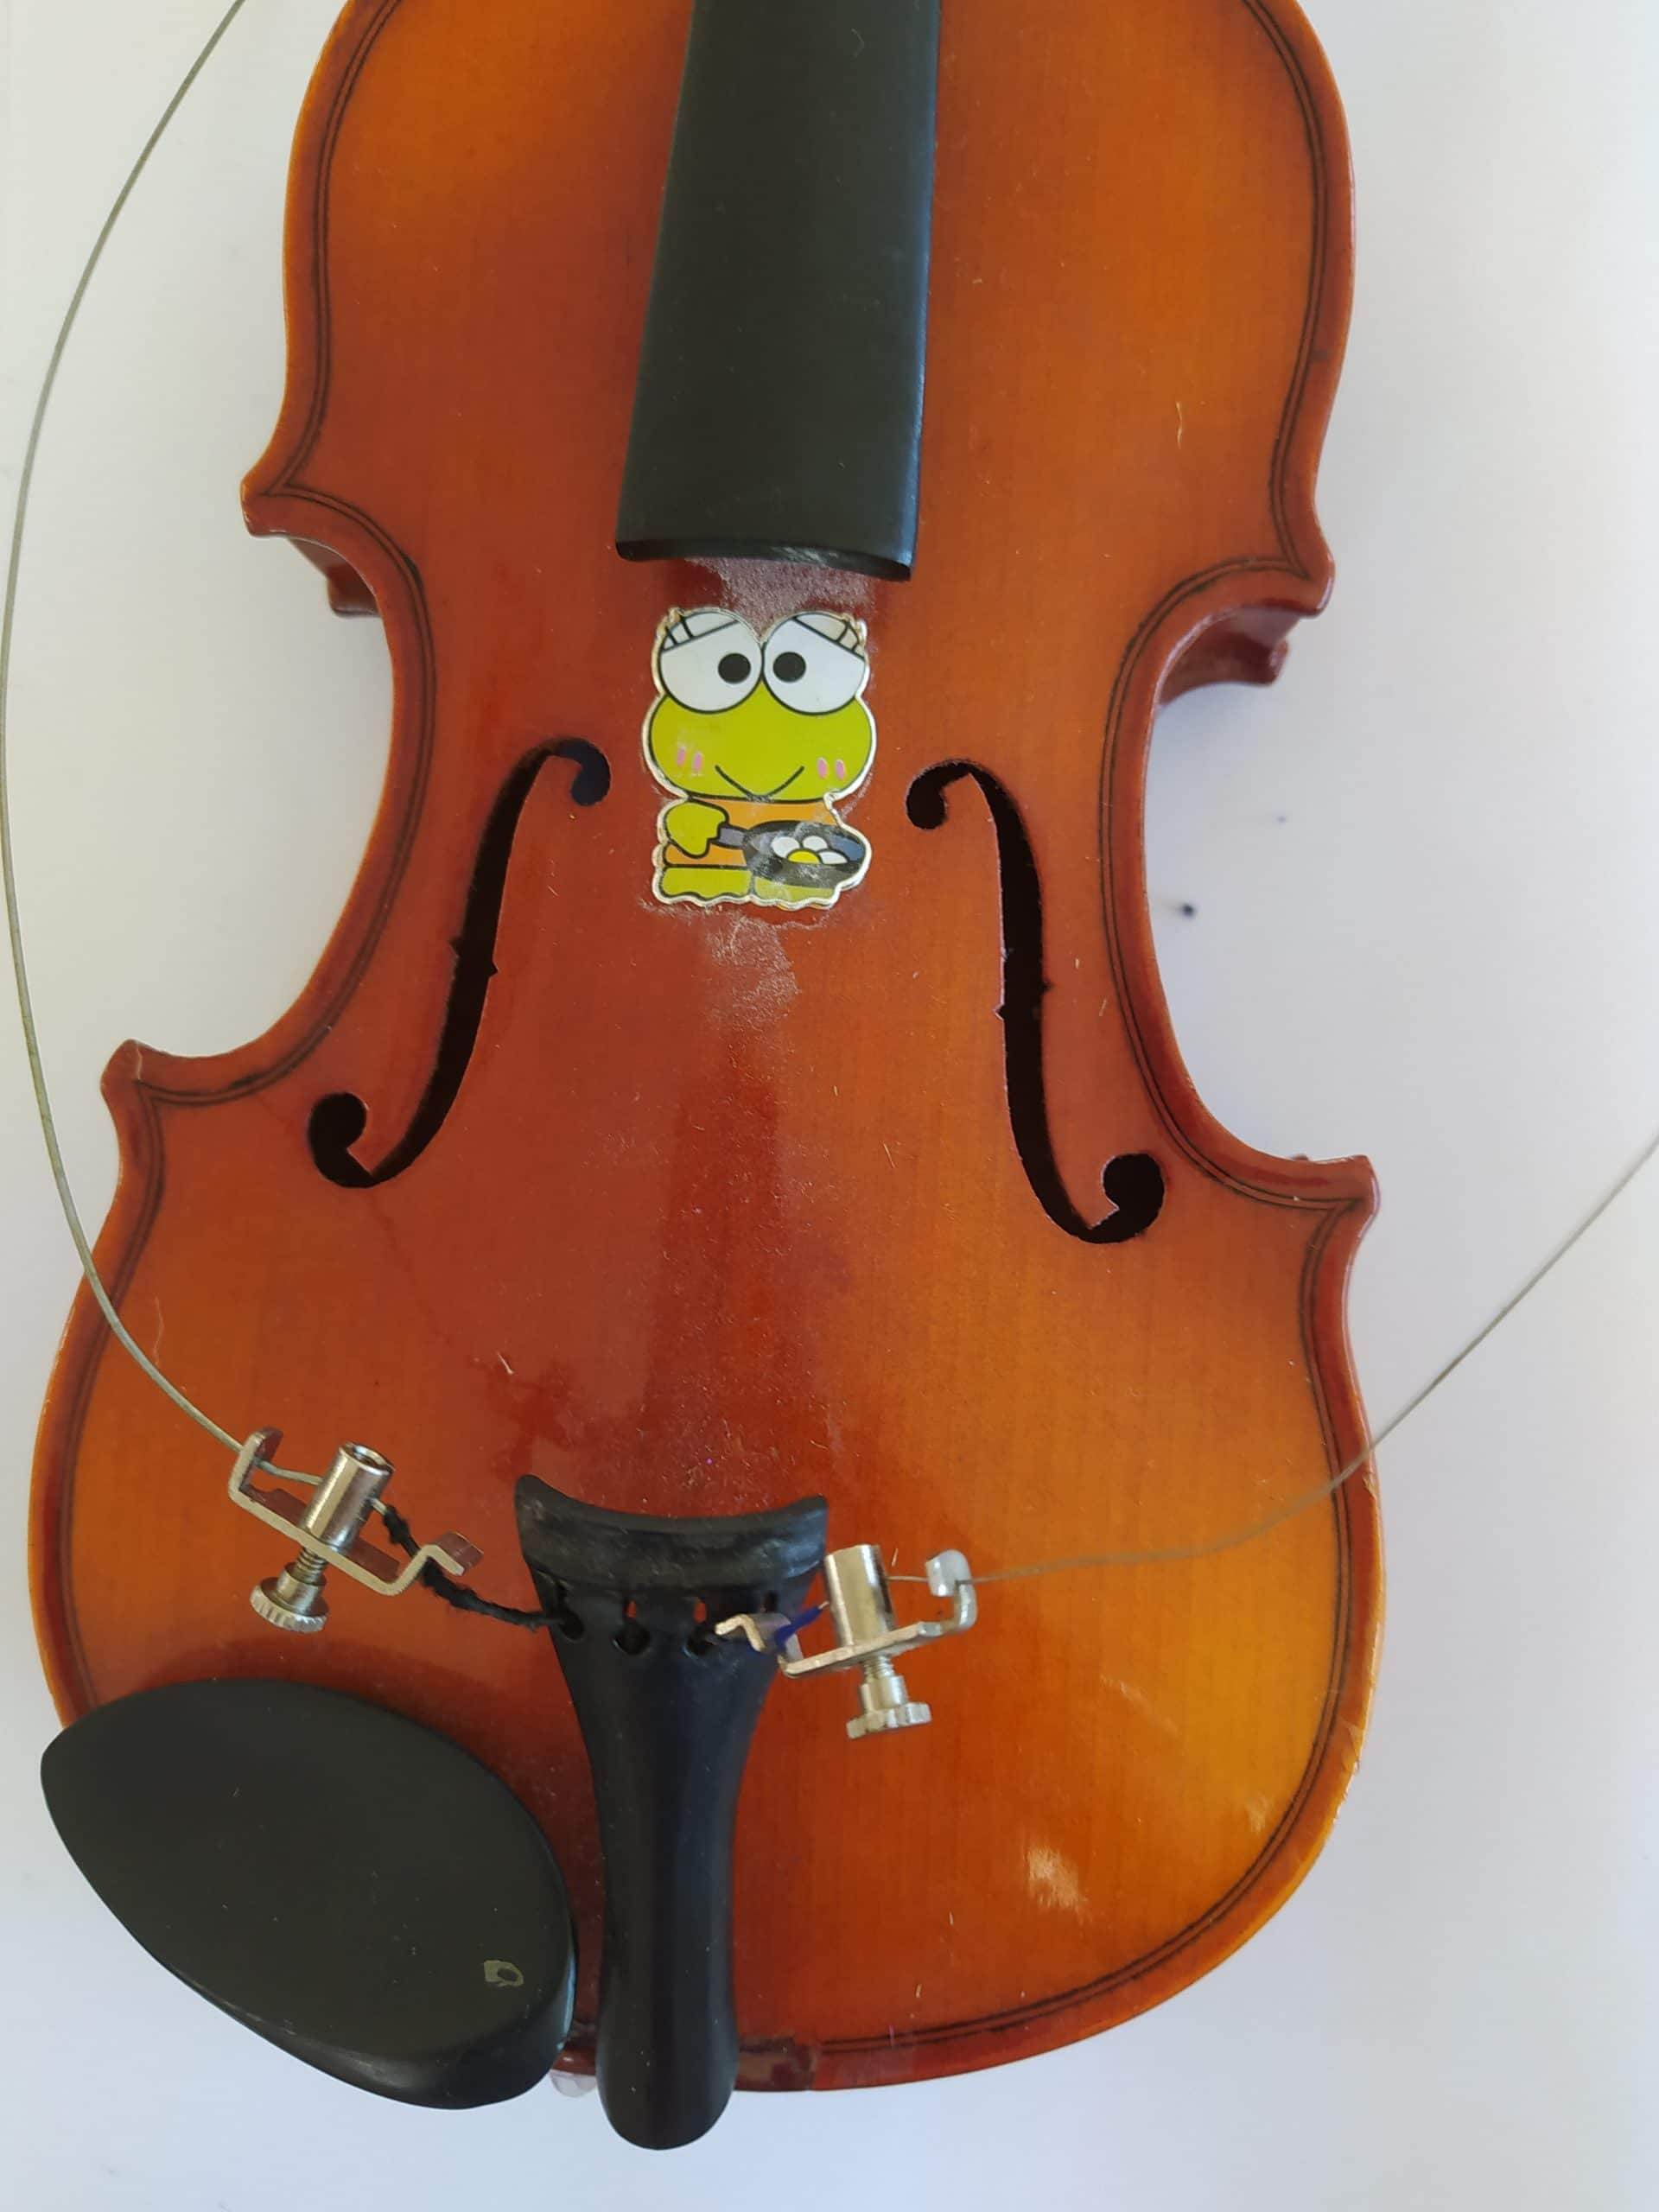 violin with all the strings removed and broken